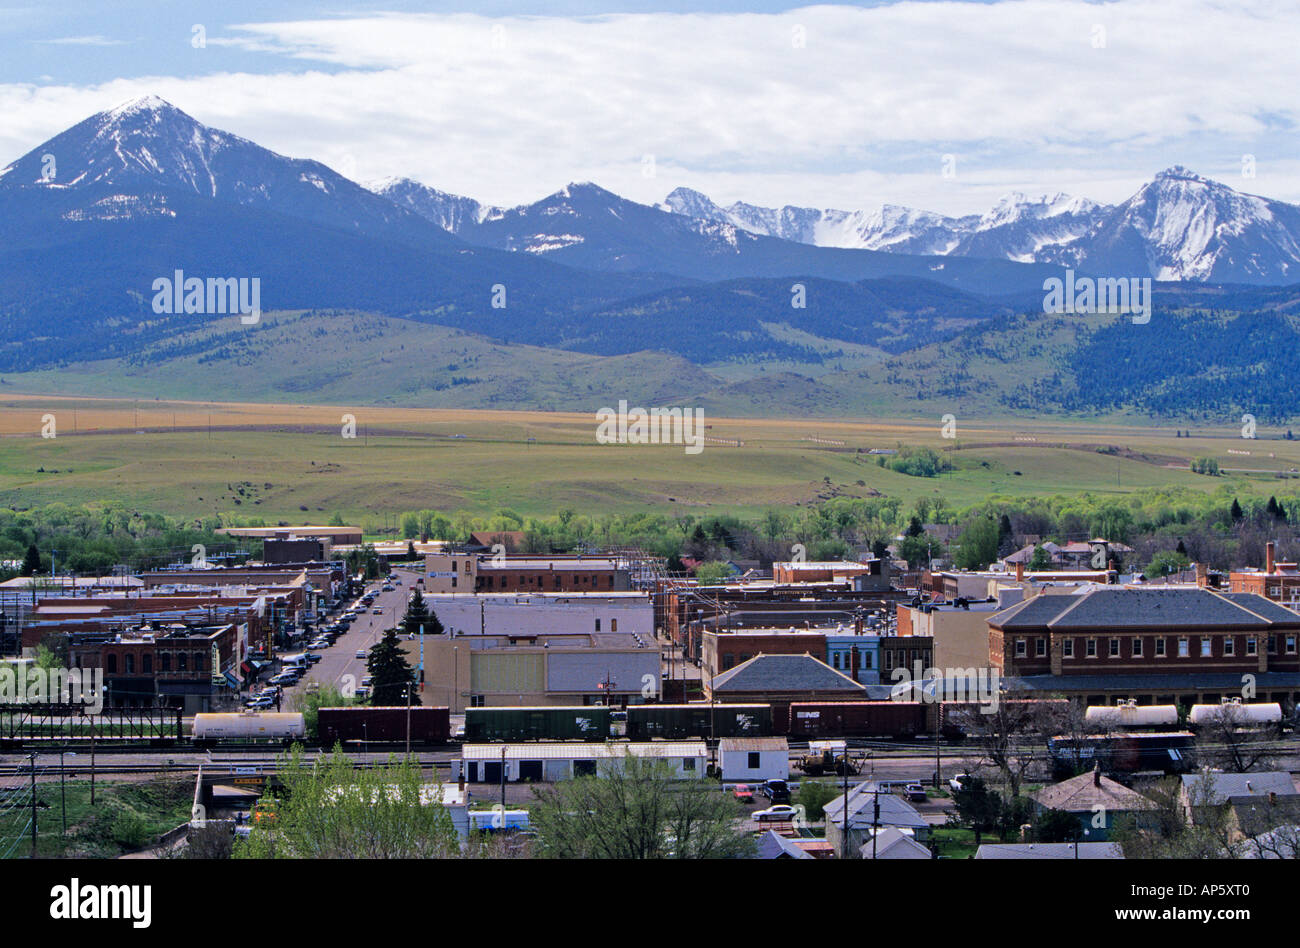 Livingston Montana with Absaroka Mts in background - Stock Image